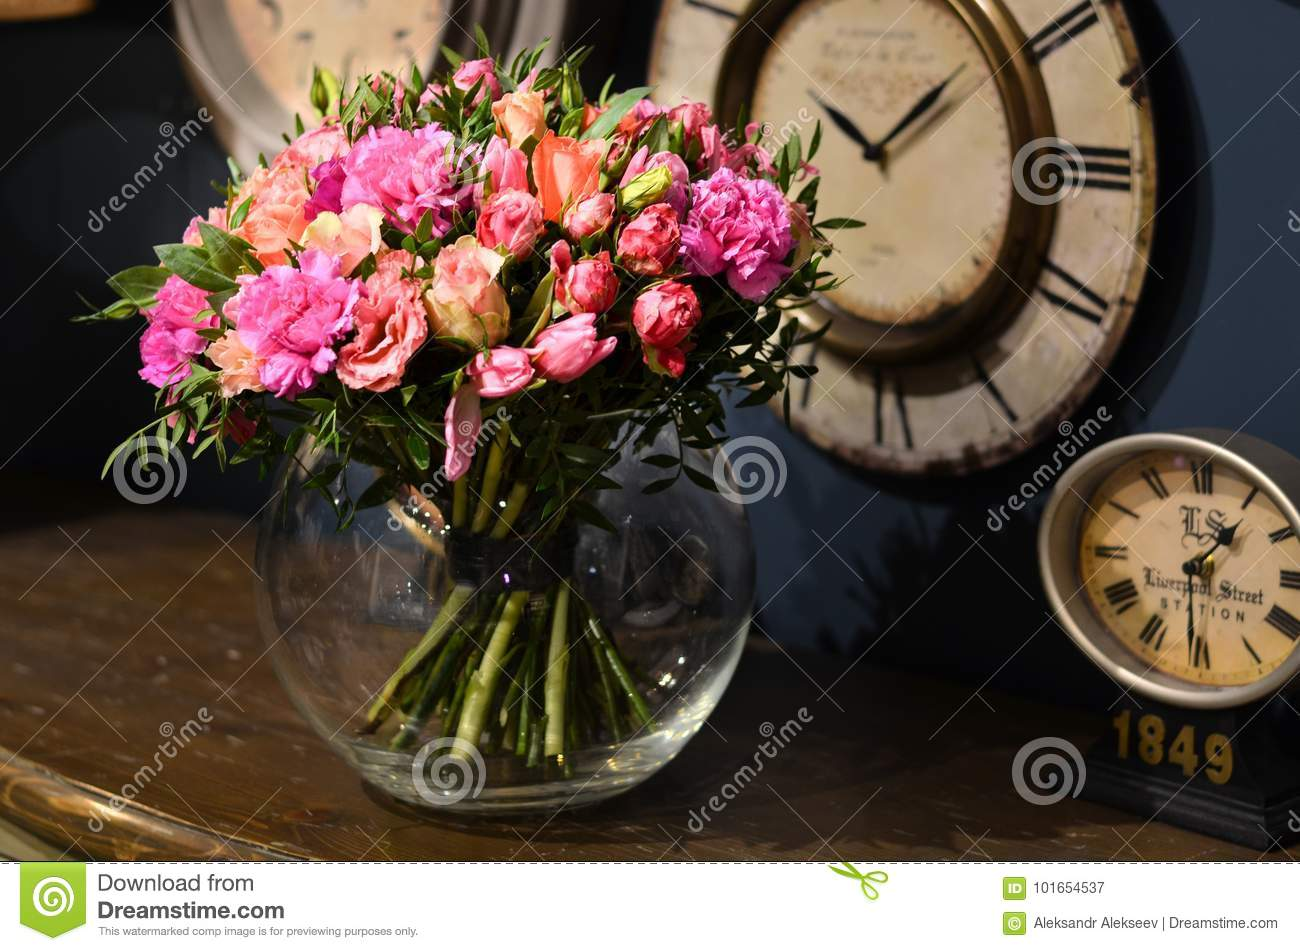 bouquet of roses in a transparent round glass vase standing on a